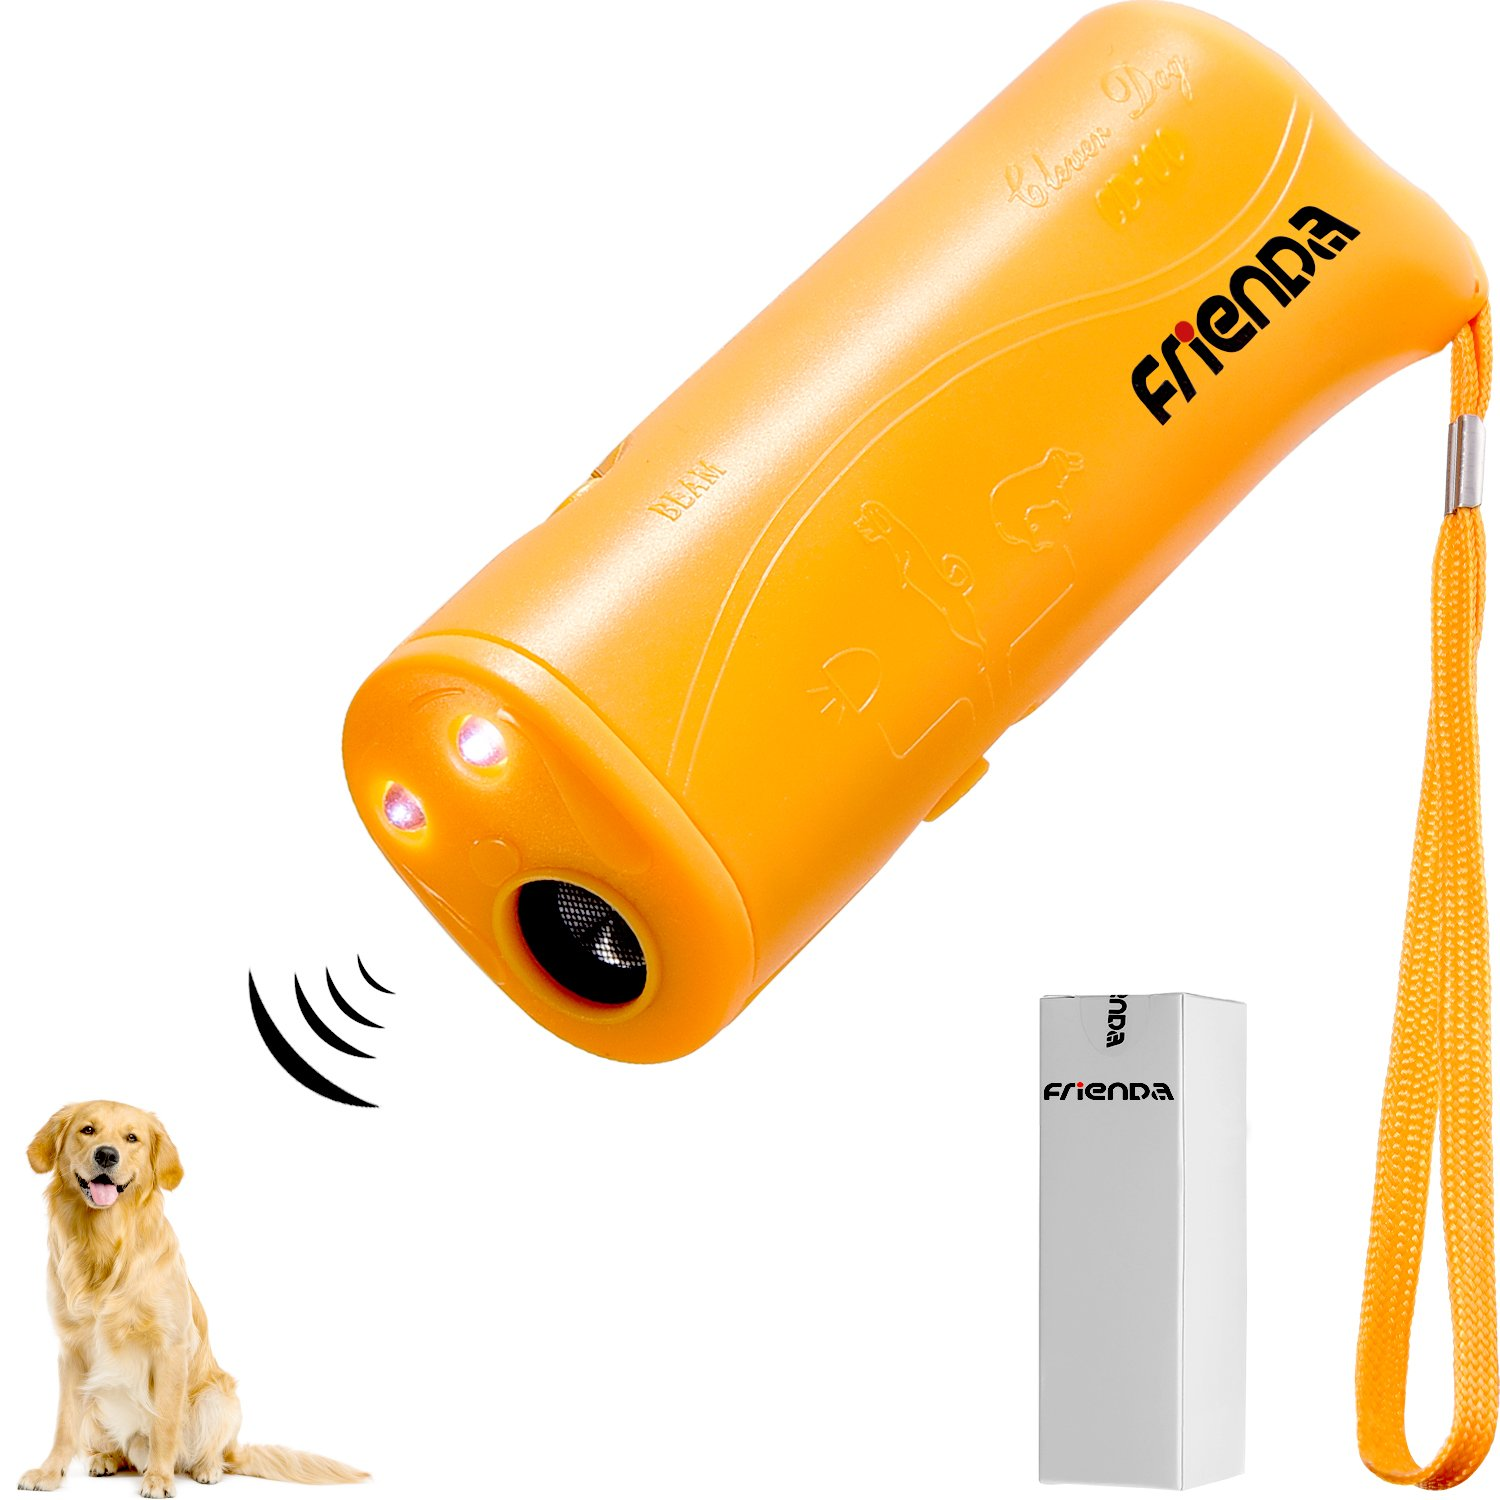 Frienda LED Ultrasonic Dog Repeller and Trainer Device 3 in 1 Anti Barking Stop Bark Handheld Dog Training Device (Yellow) by Frienda